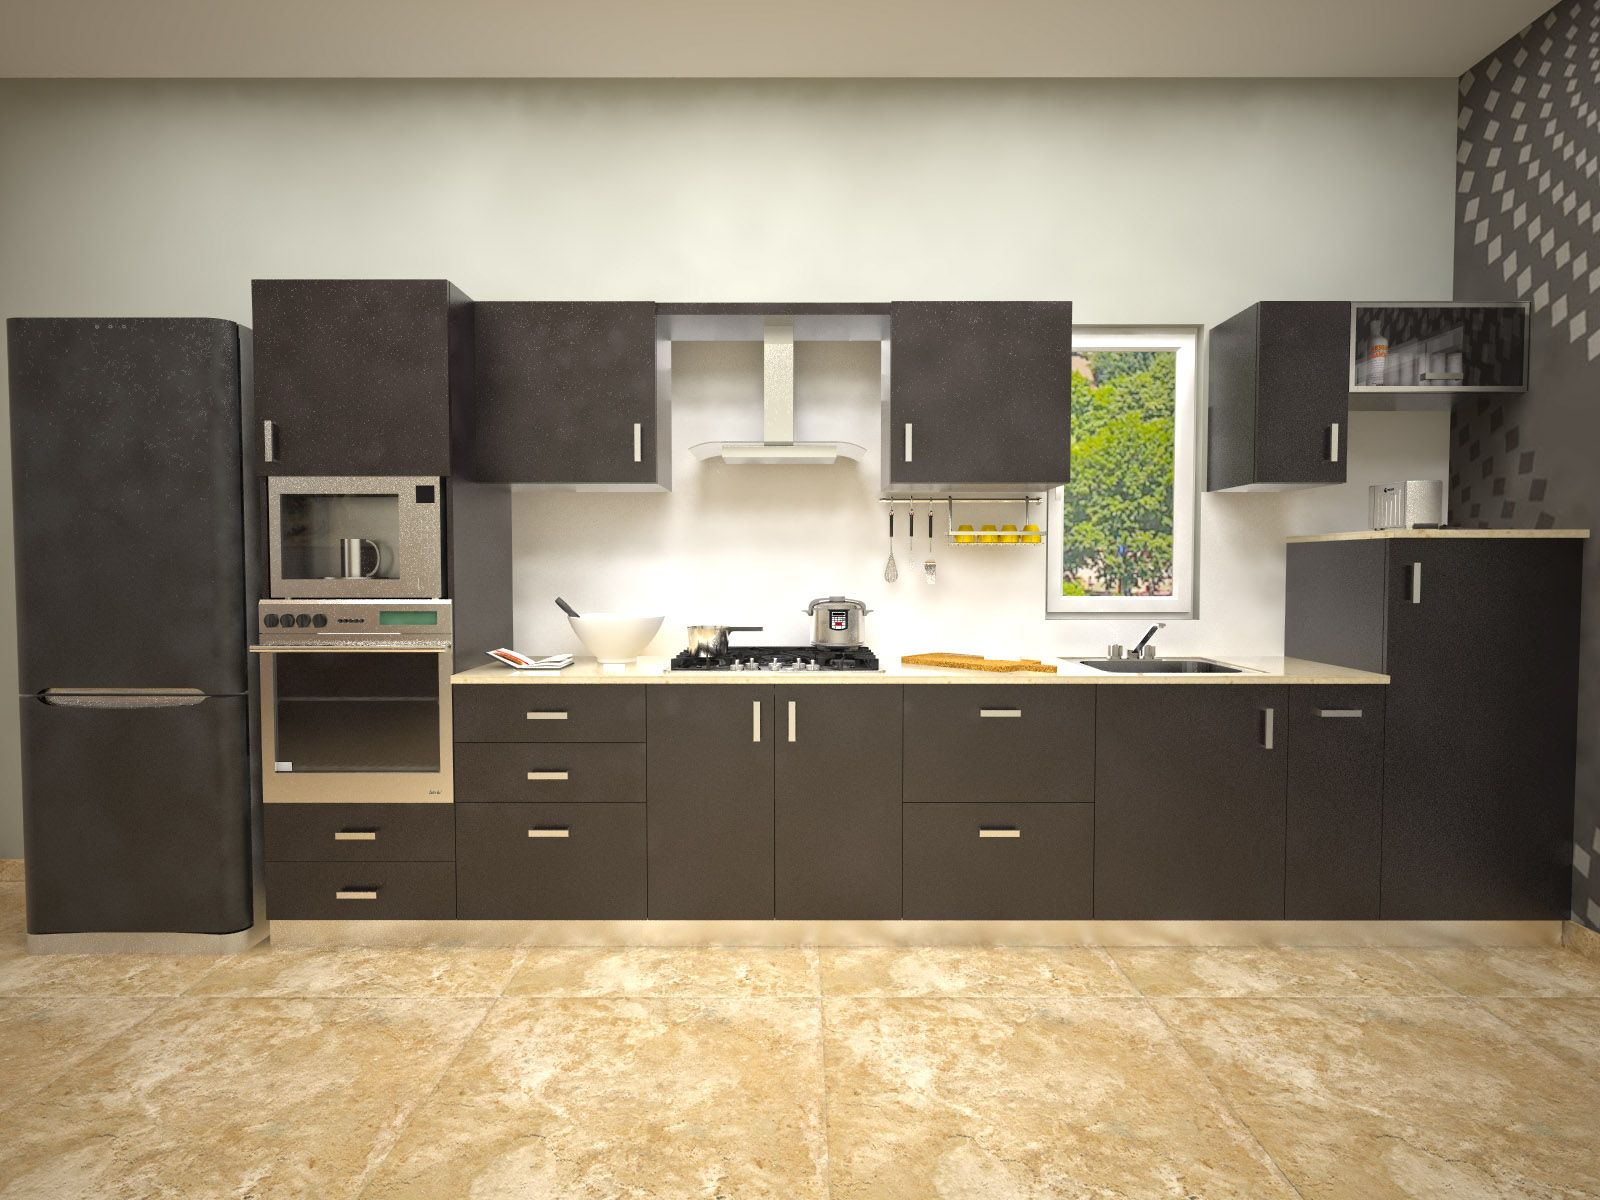 Aamoda kitchen gorgeously minimal modular kitchen for Modular kitchen shelves designs